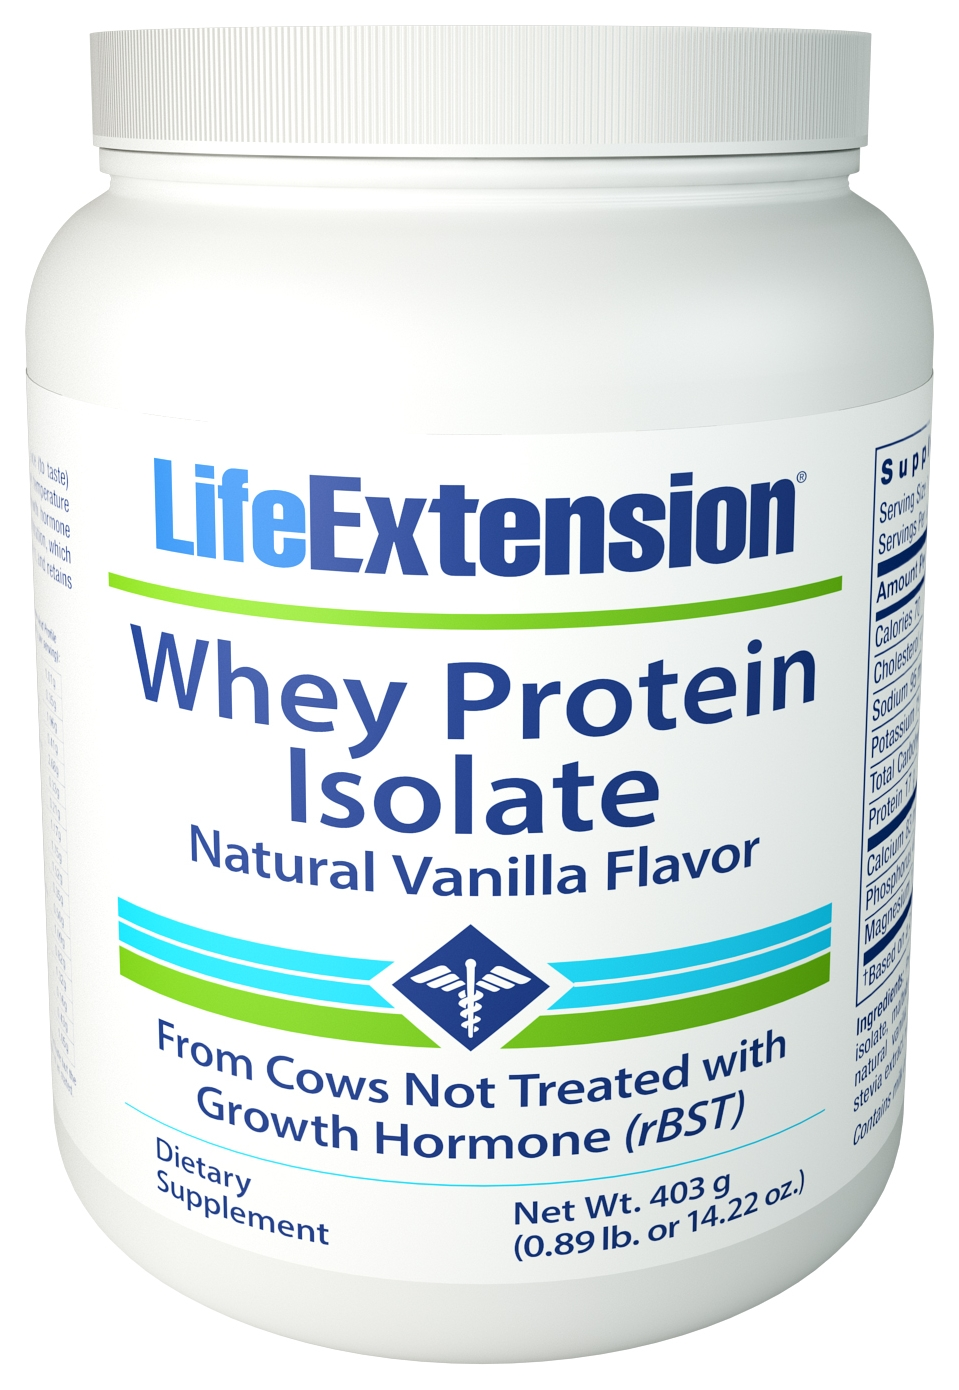 Whey Protein Isolate (Natural Vanilla Flavor) 454 g (1 lb) by Life Extension